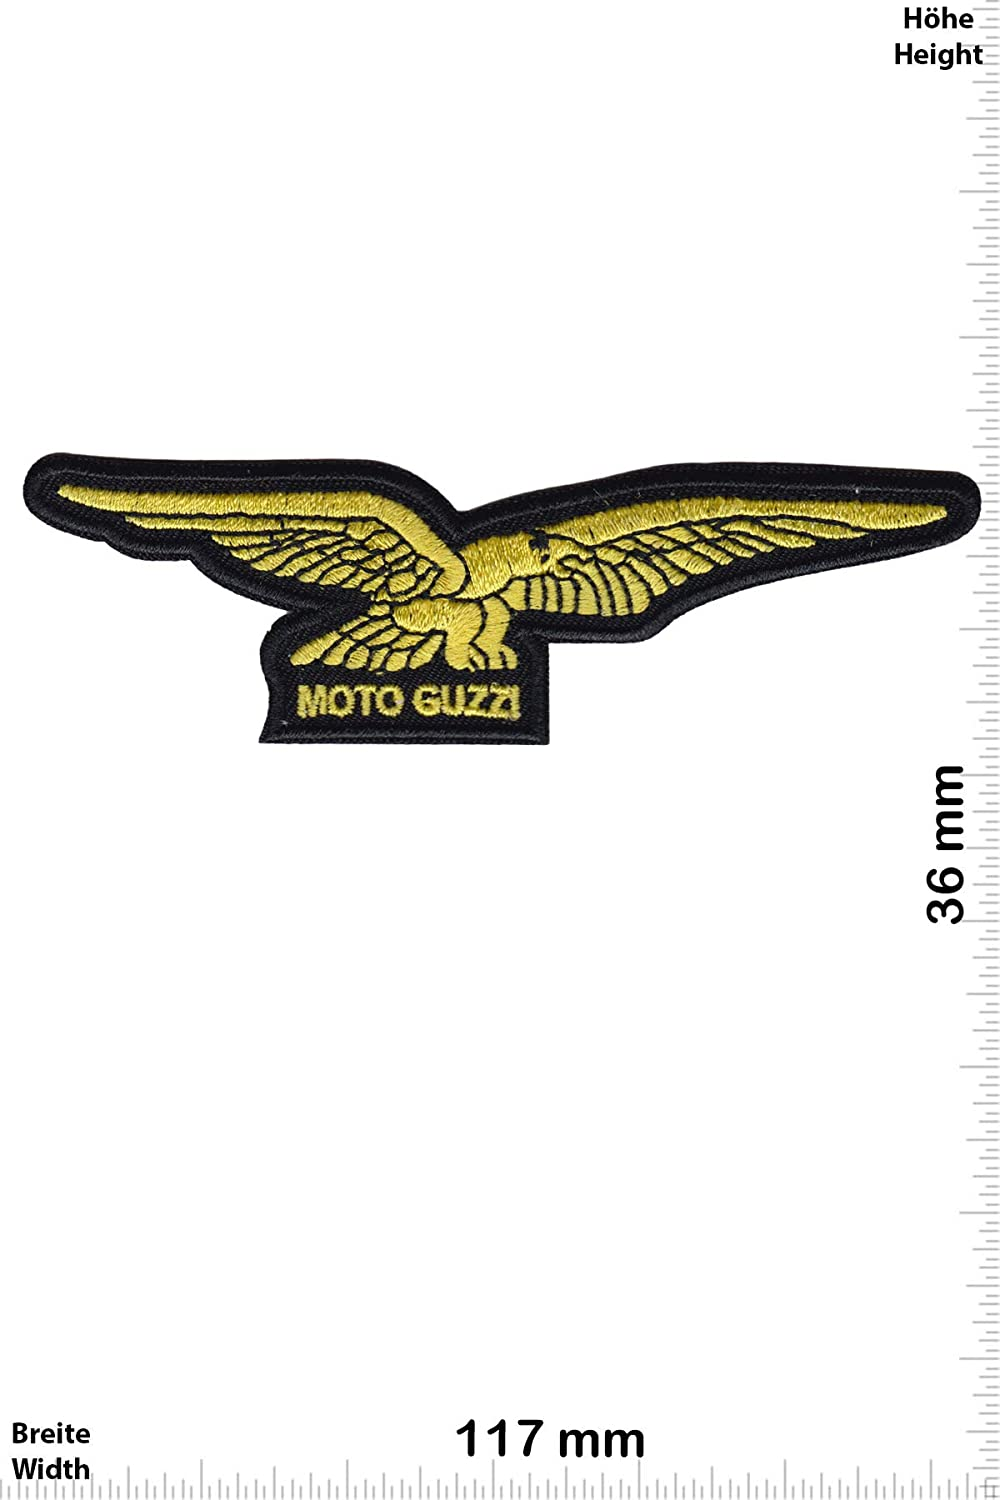 Patch - Moto Guzzi - Gold -Sport Automobile - Sport -Moto -Moto Guzzi -Moto Guzzi - Iron on Applique Embroidery Écusson brodé Costume Cadeau- Give